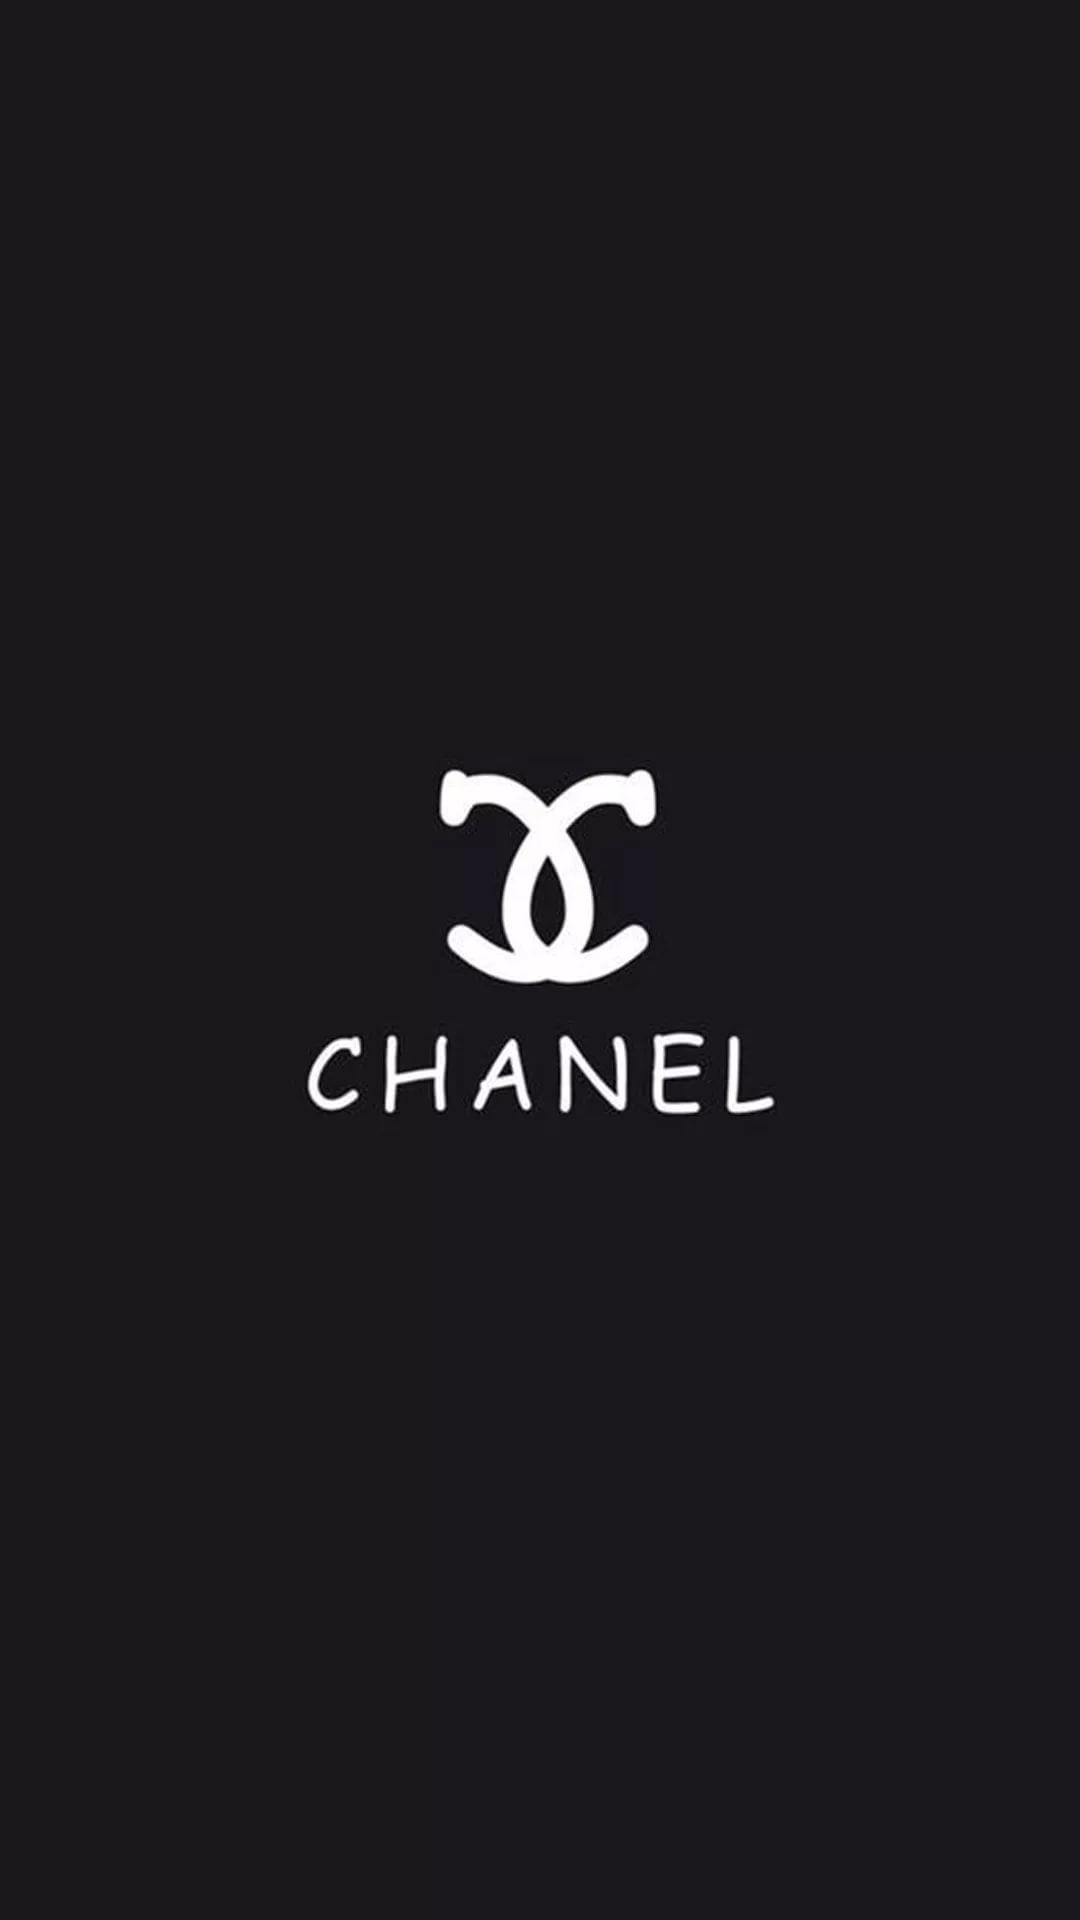 Chanel Background wallpaper